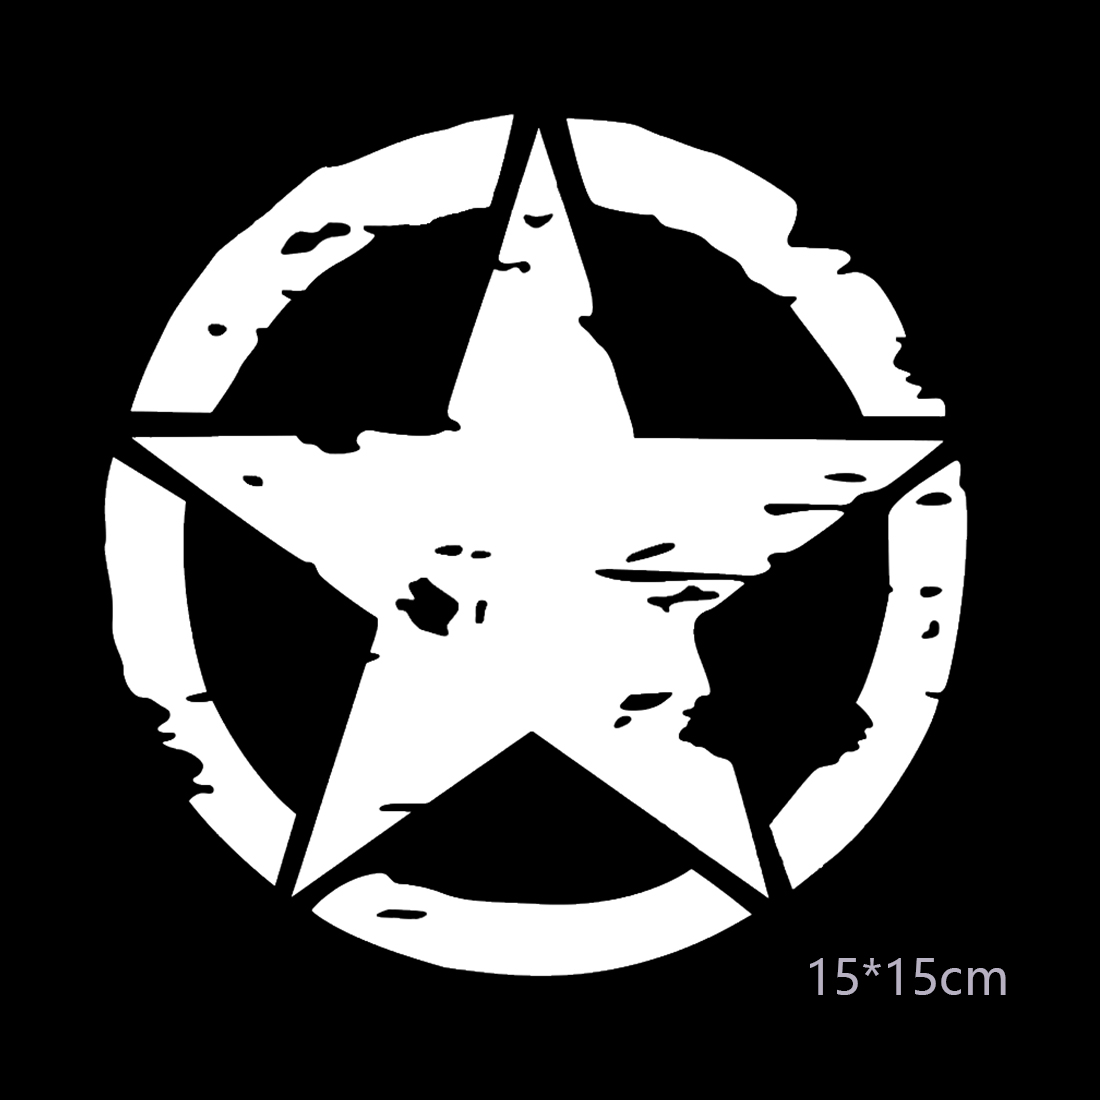 Dewtreetali 15cm15cm army star graphic decals motorcycle car stickers decal vinyl car styling